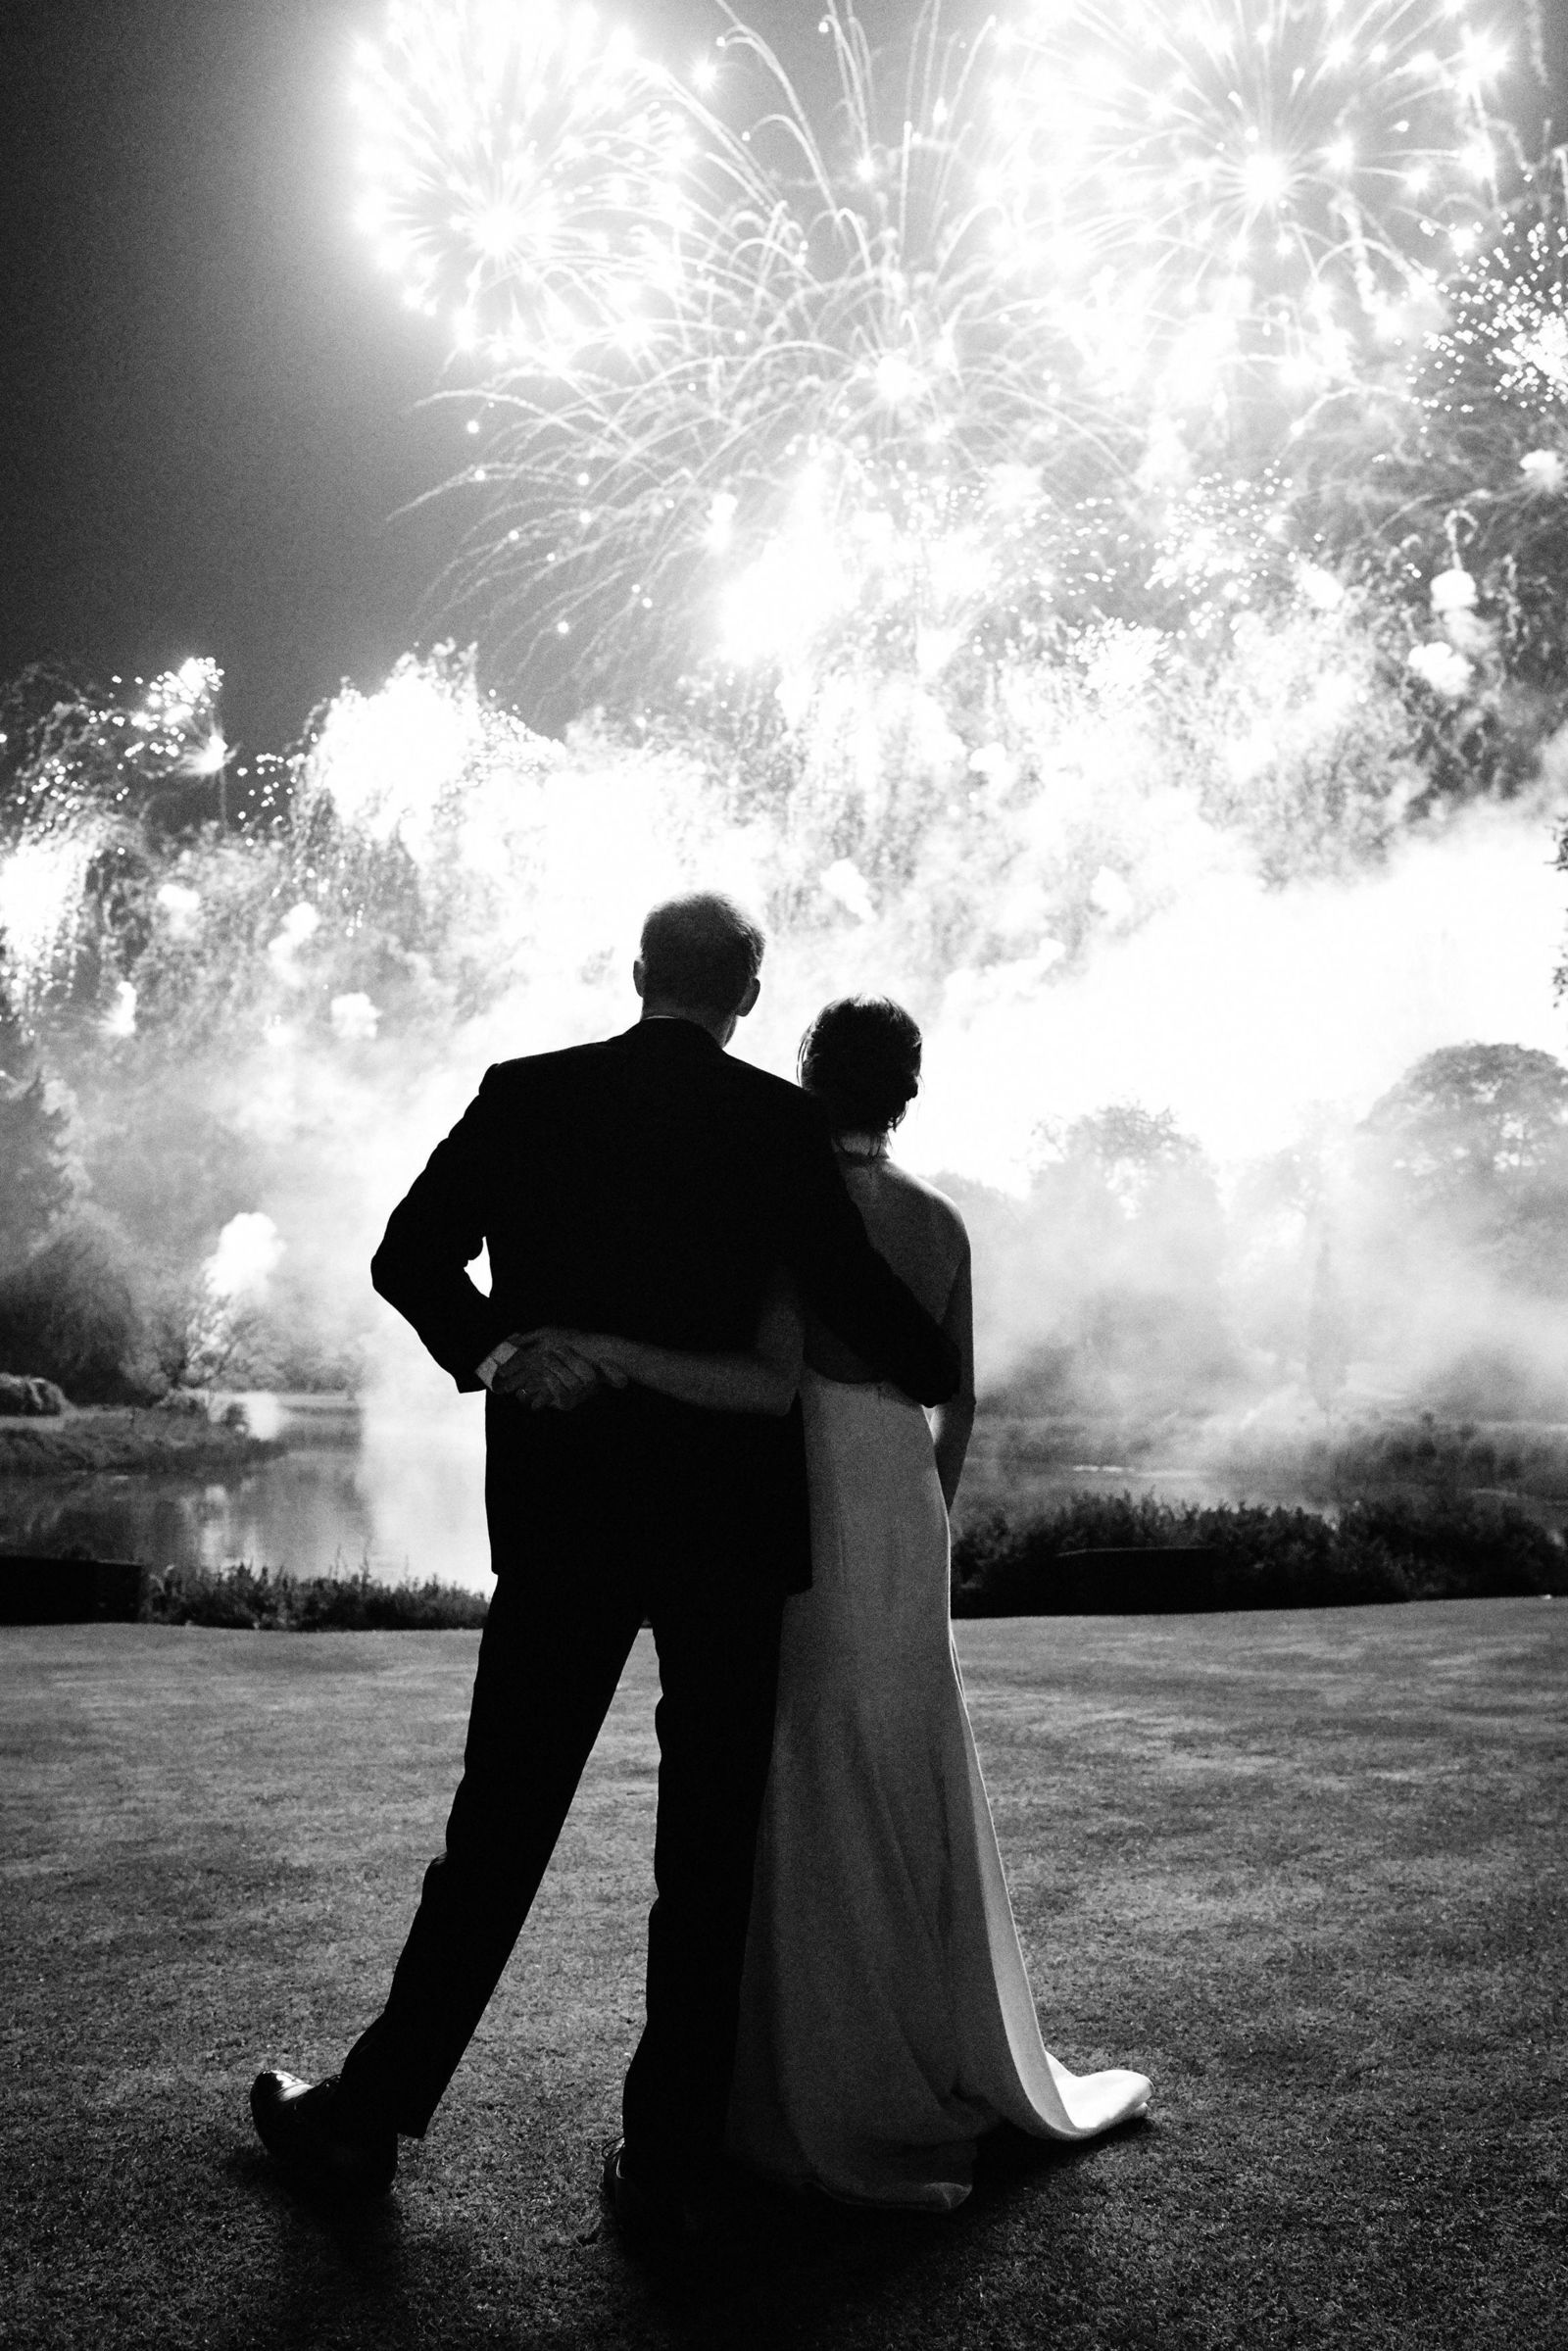 This photo released by Kensington Palace on Friday Dec. 14, 2018, shows the photo taken by Chris Allerton of Britain's Prince Harry and Meghan, Duchess of Sussex at their wedding reception at Frogmore House, Windsor, England. (Chris Allerton/Kensington Palace via AP)